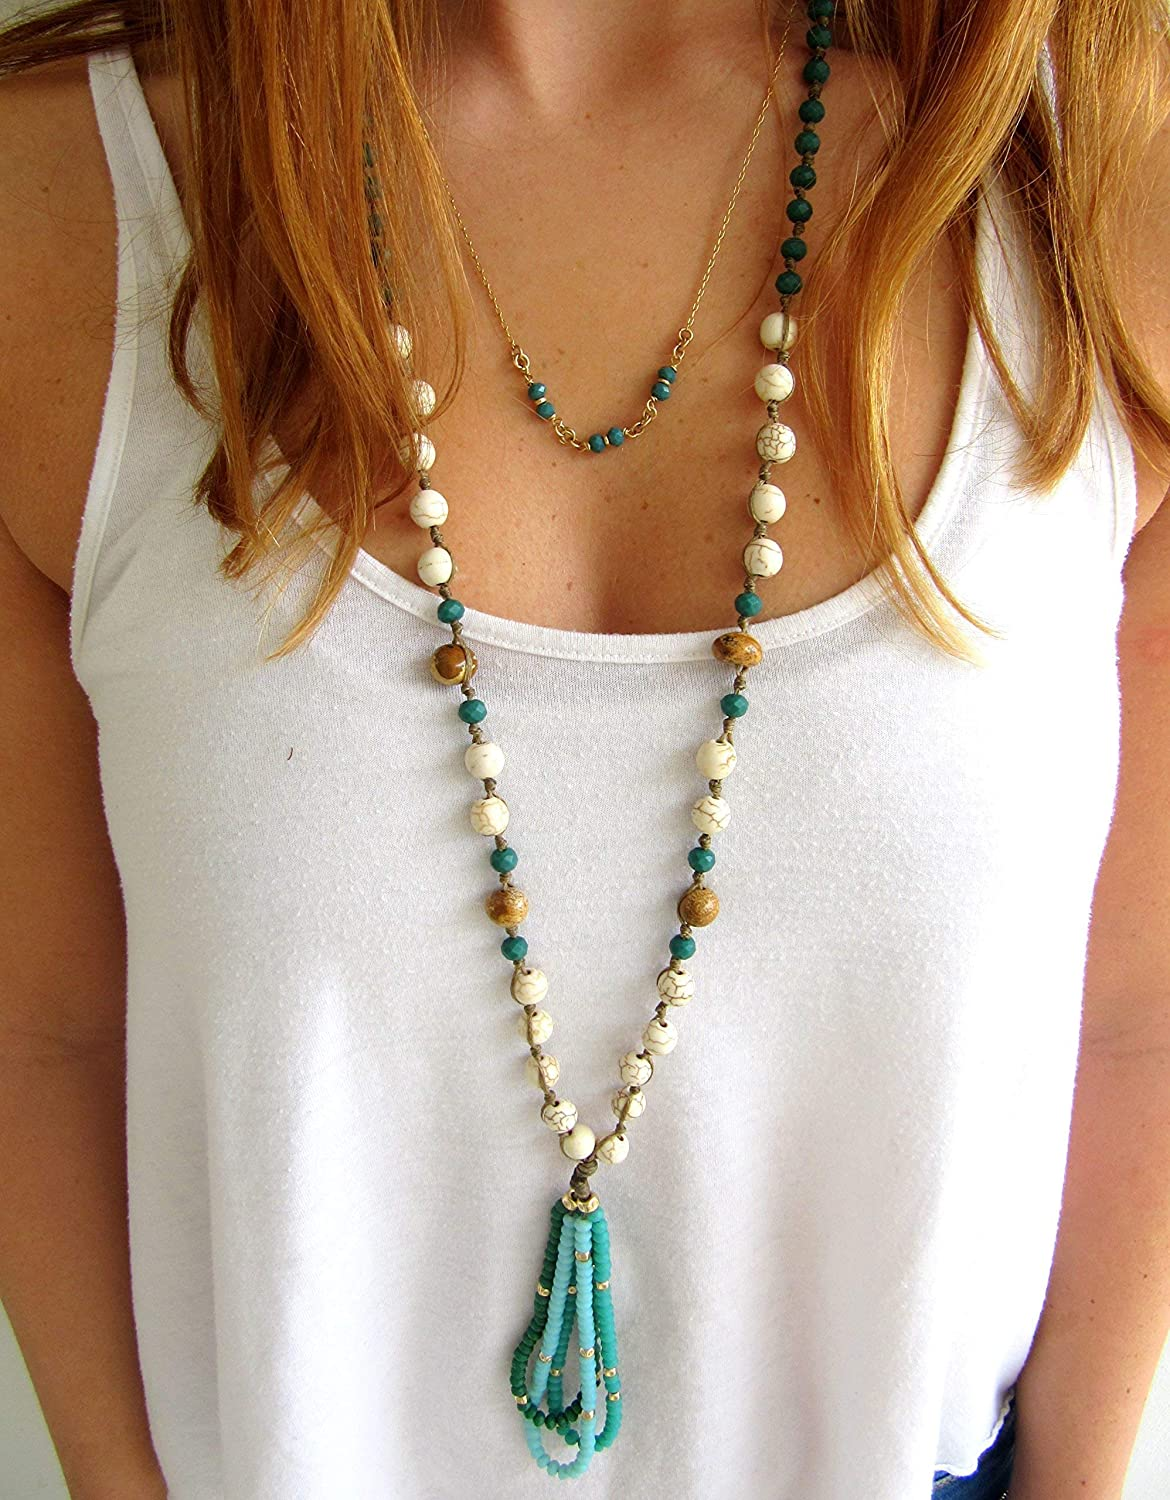 Boemian Handmade necklace with real stone white howlite gemstone